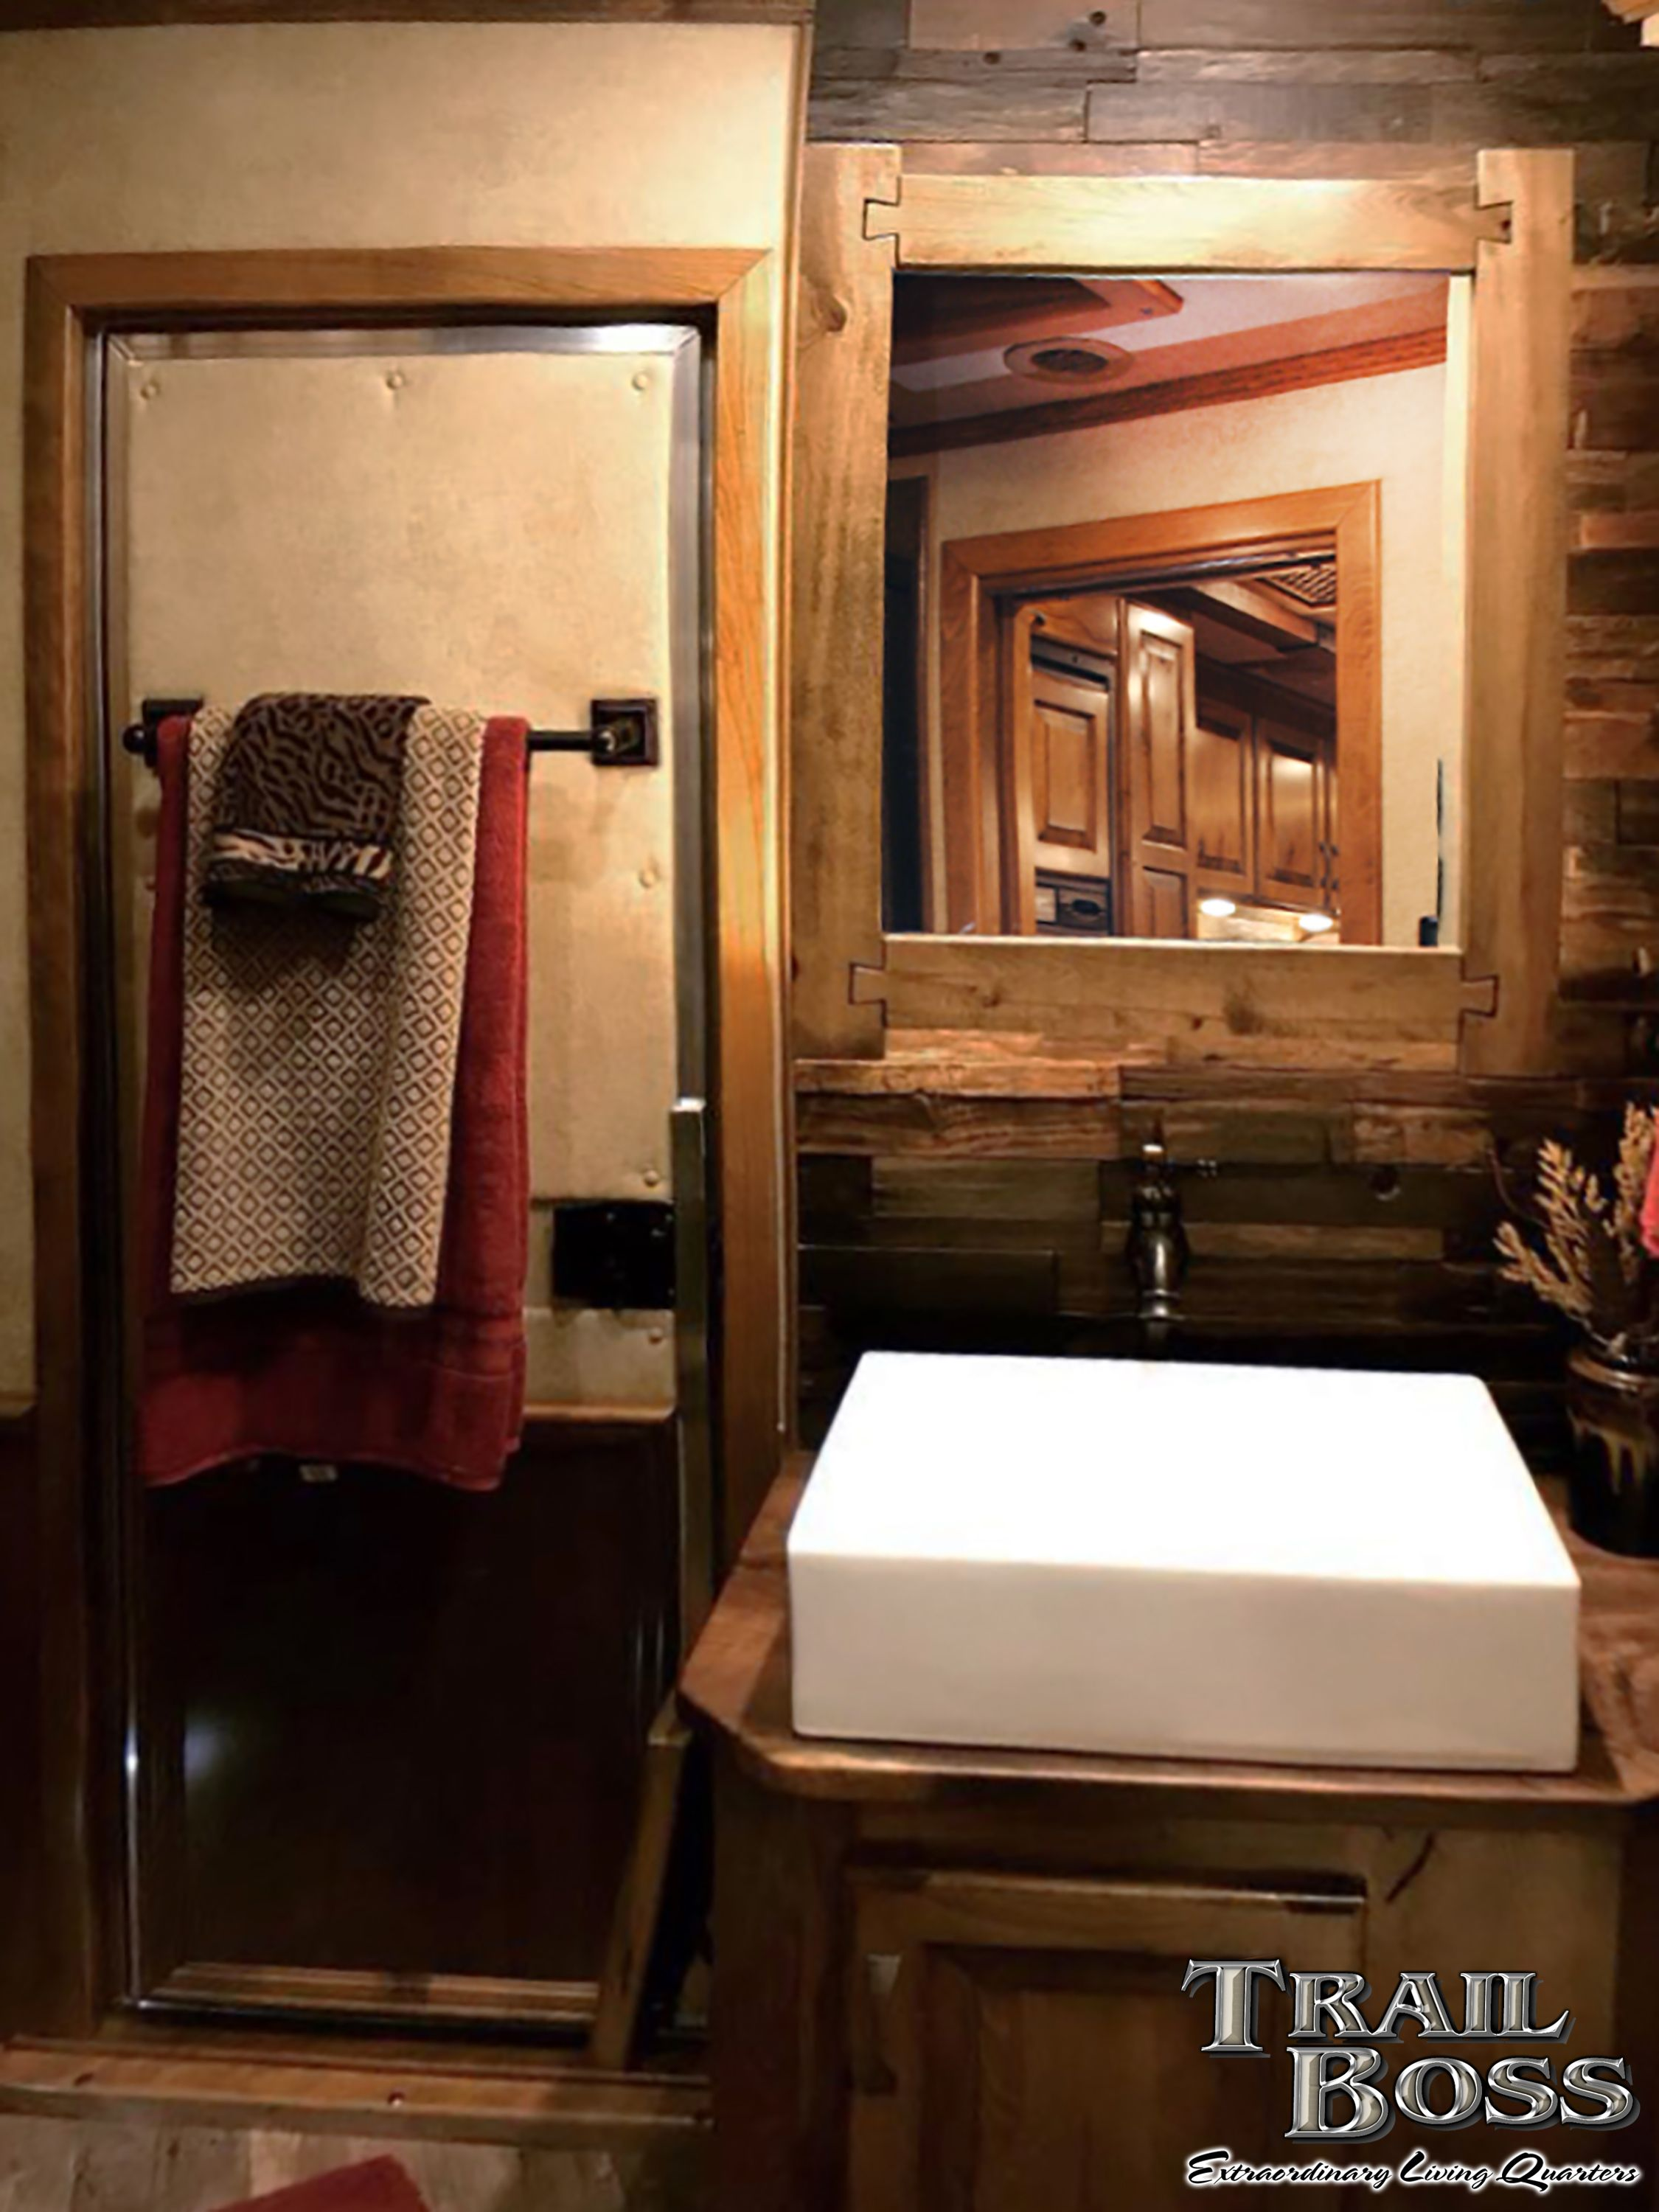 This Rustic Farmhouse Style Bathroom In An Elite Horse Trailer With Living Quarters By Trail Boss Feat Bathroom Farmhouse Style Luxury Living White Vessel Sink